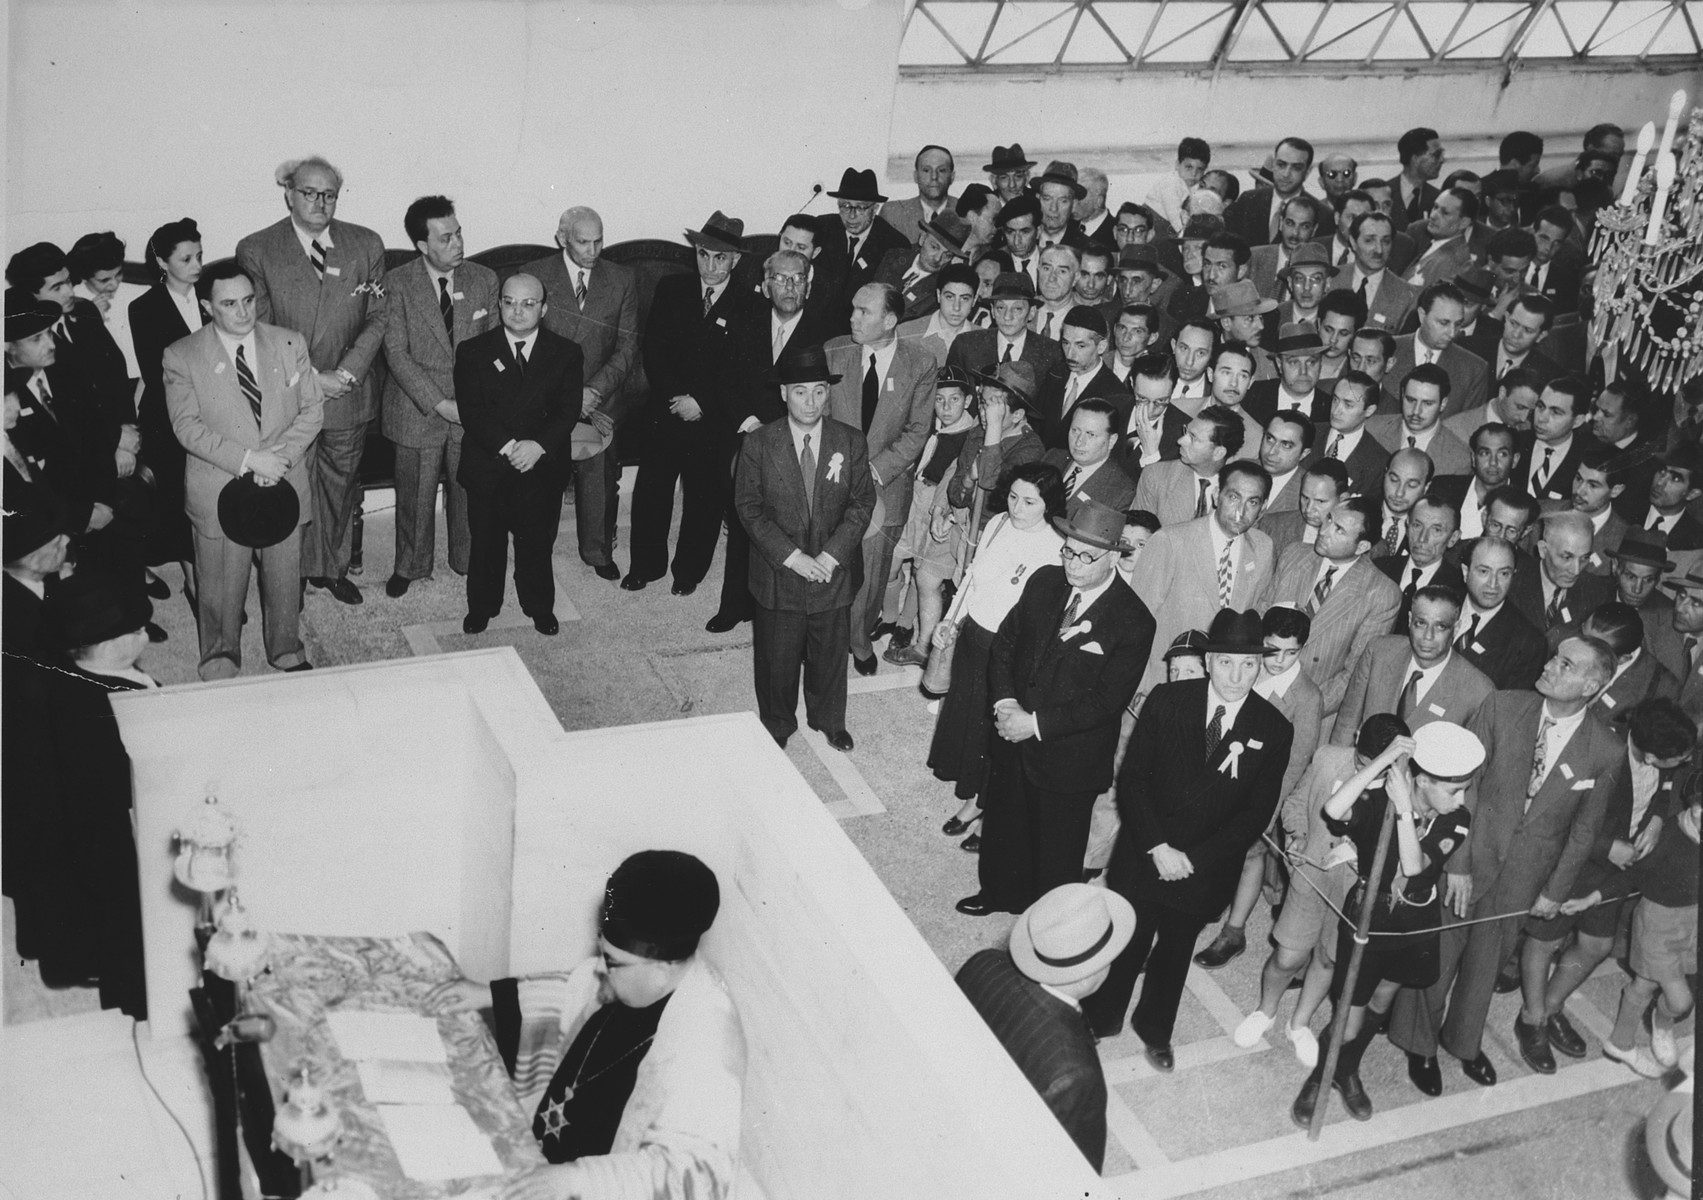 A large crowd assembles in the synagogue in Athens to celebrate the founding of Israel.  Rabbi Elias Barzilai leads the service.  Also pictured are Asher Moissis (attorney and President of the Central Board of Jewish Communities), Rabbi Mizrahi of Corfu, Kostas Kotzias (Mayor of Athens), Dimitri Avramopoulos (diplomat and member of parliament),  Lavinger (Presient of Central Board of Jewish Communities), Jacques Beraha, ? Moshe, ? Ouziel, Sam Natan, Sam Levy and Simtov Hassid.